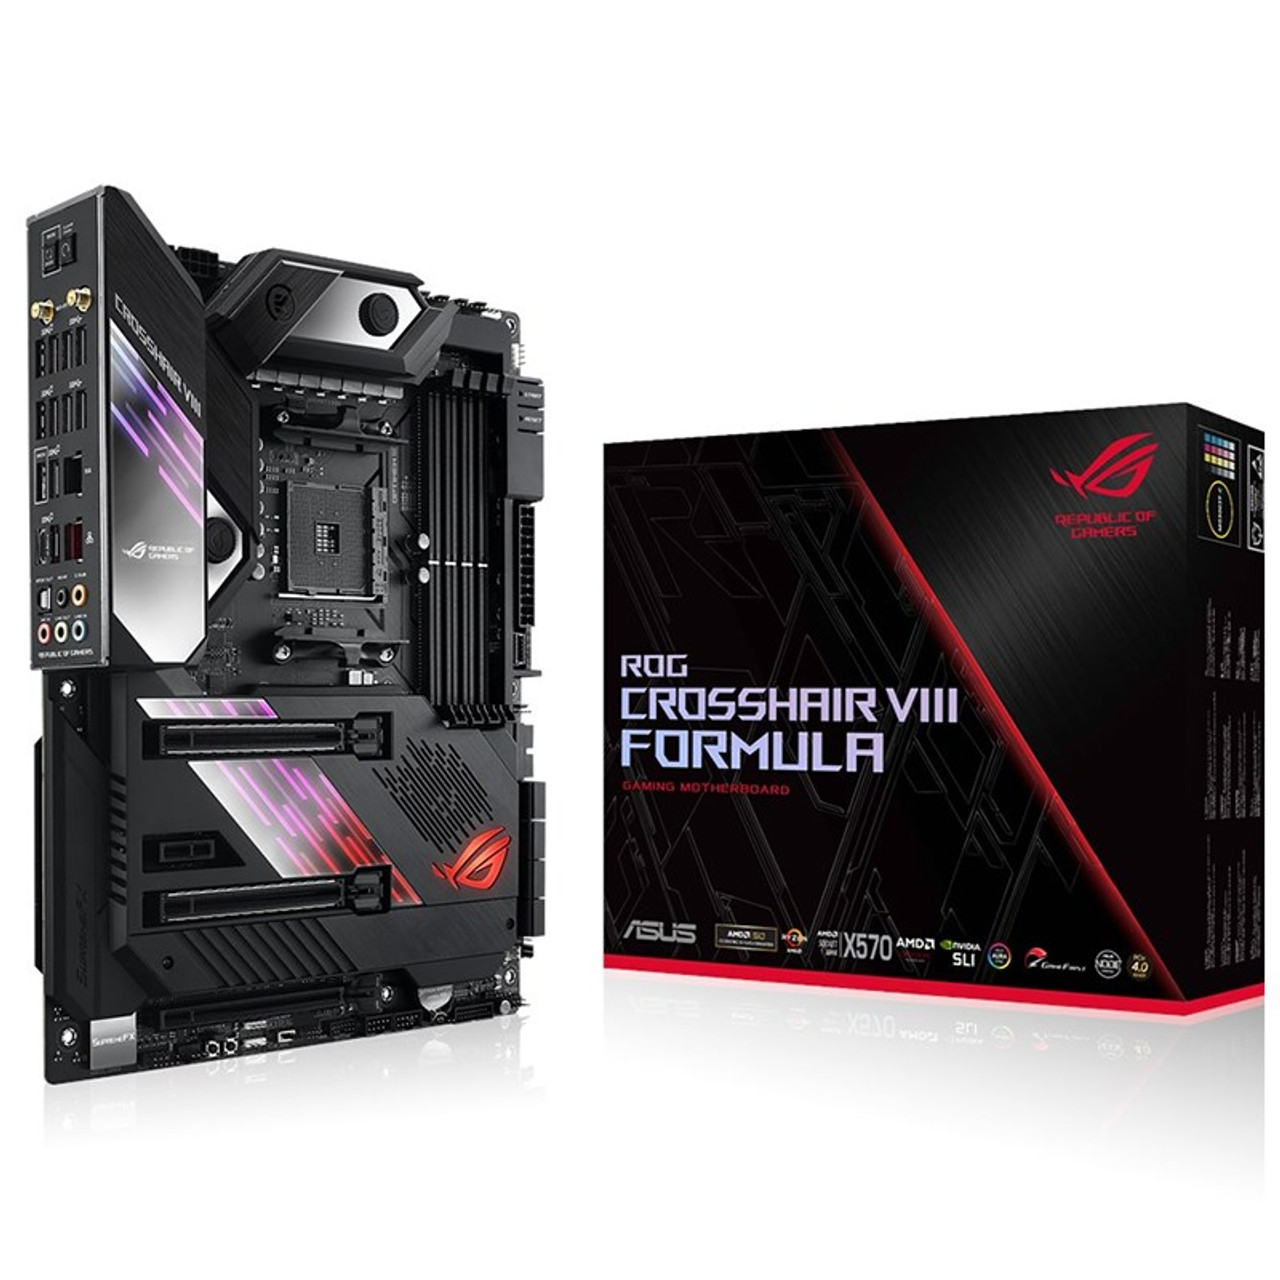 Product image for Asus ROG Crosshair VIII Formula Motherboard | CX Computer Superstore